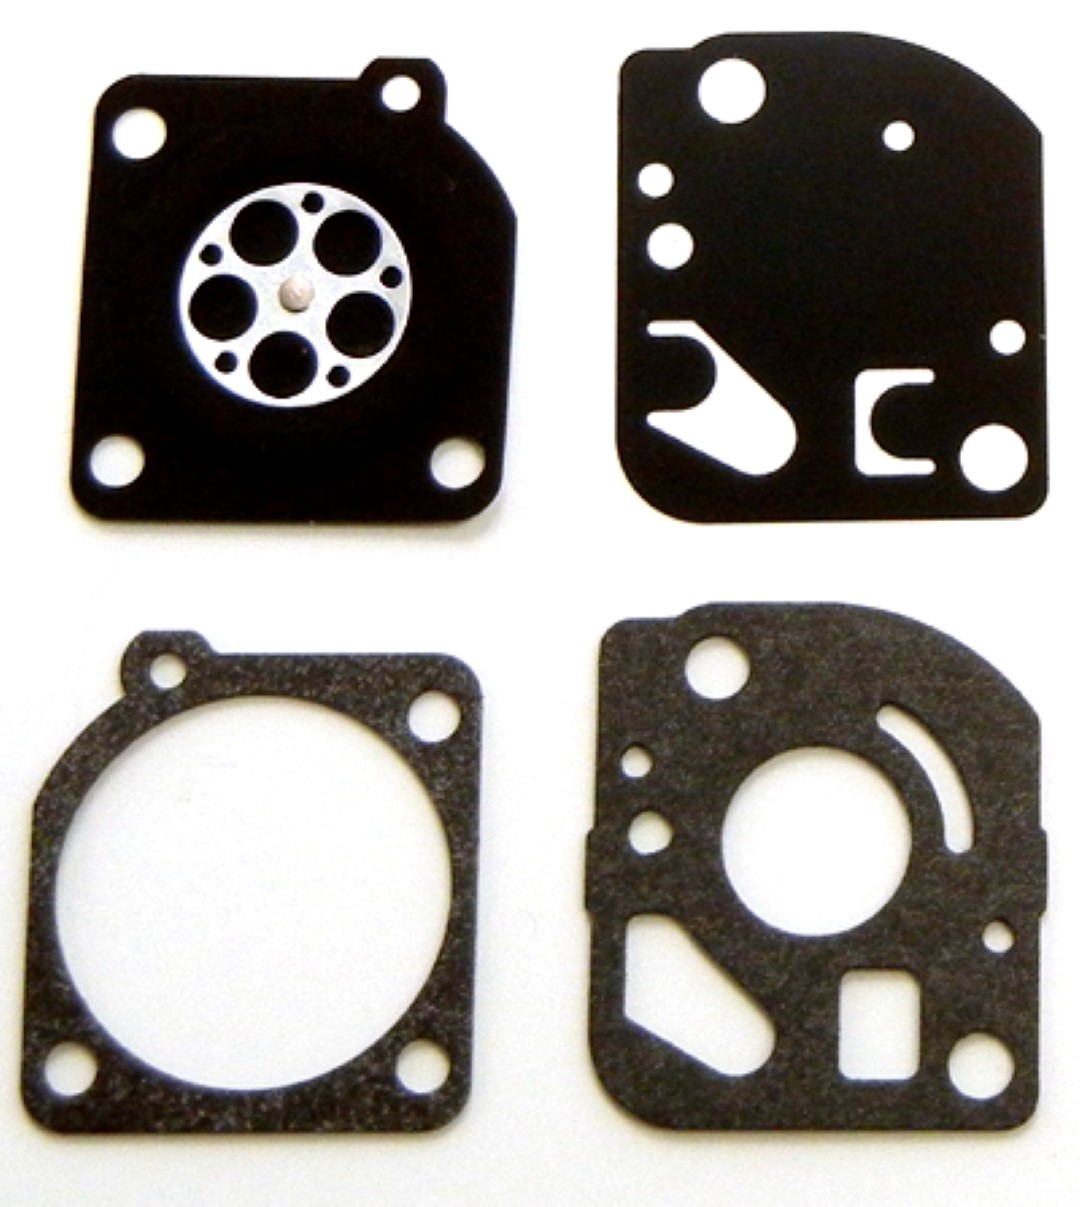 Carburetor Gasket & Diaphragm Kit Gnd-41 Echo Srm 2305/Gt2150 Sr